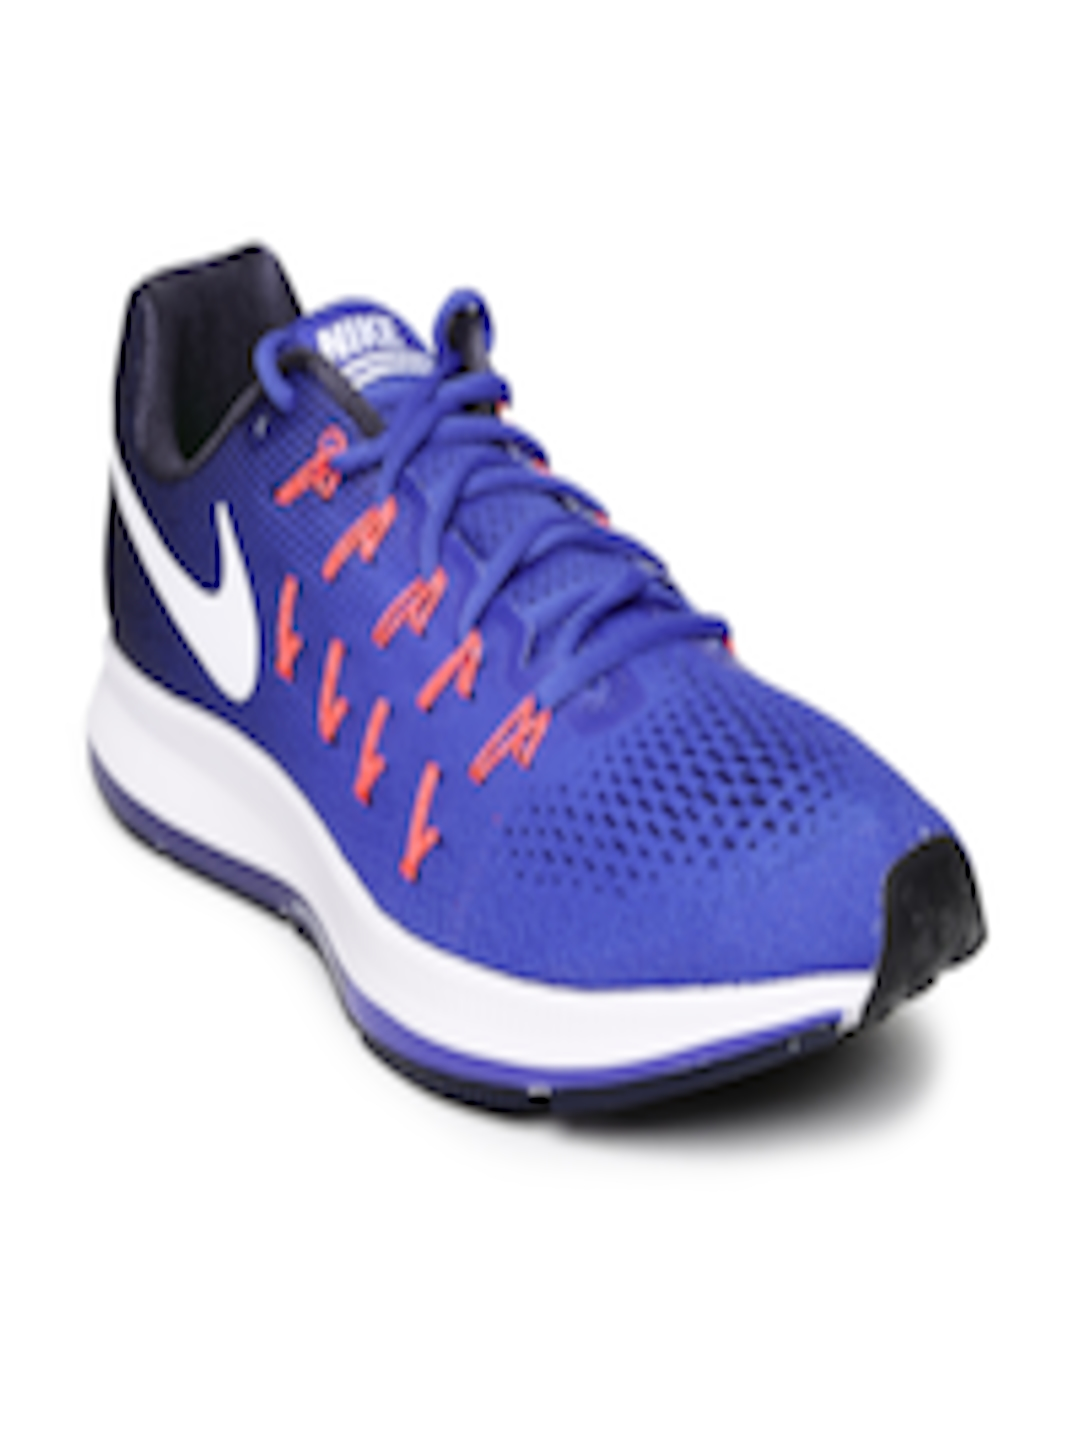 b7c1f9742a6 Buy Nike Men Blue Air Zoom Pegasus 33 Running Shoes - Sports Shoes for Men  1420964